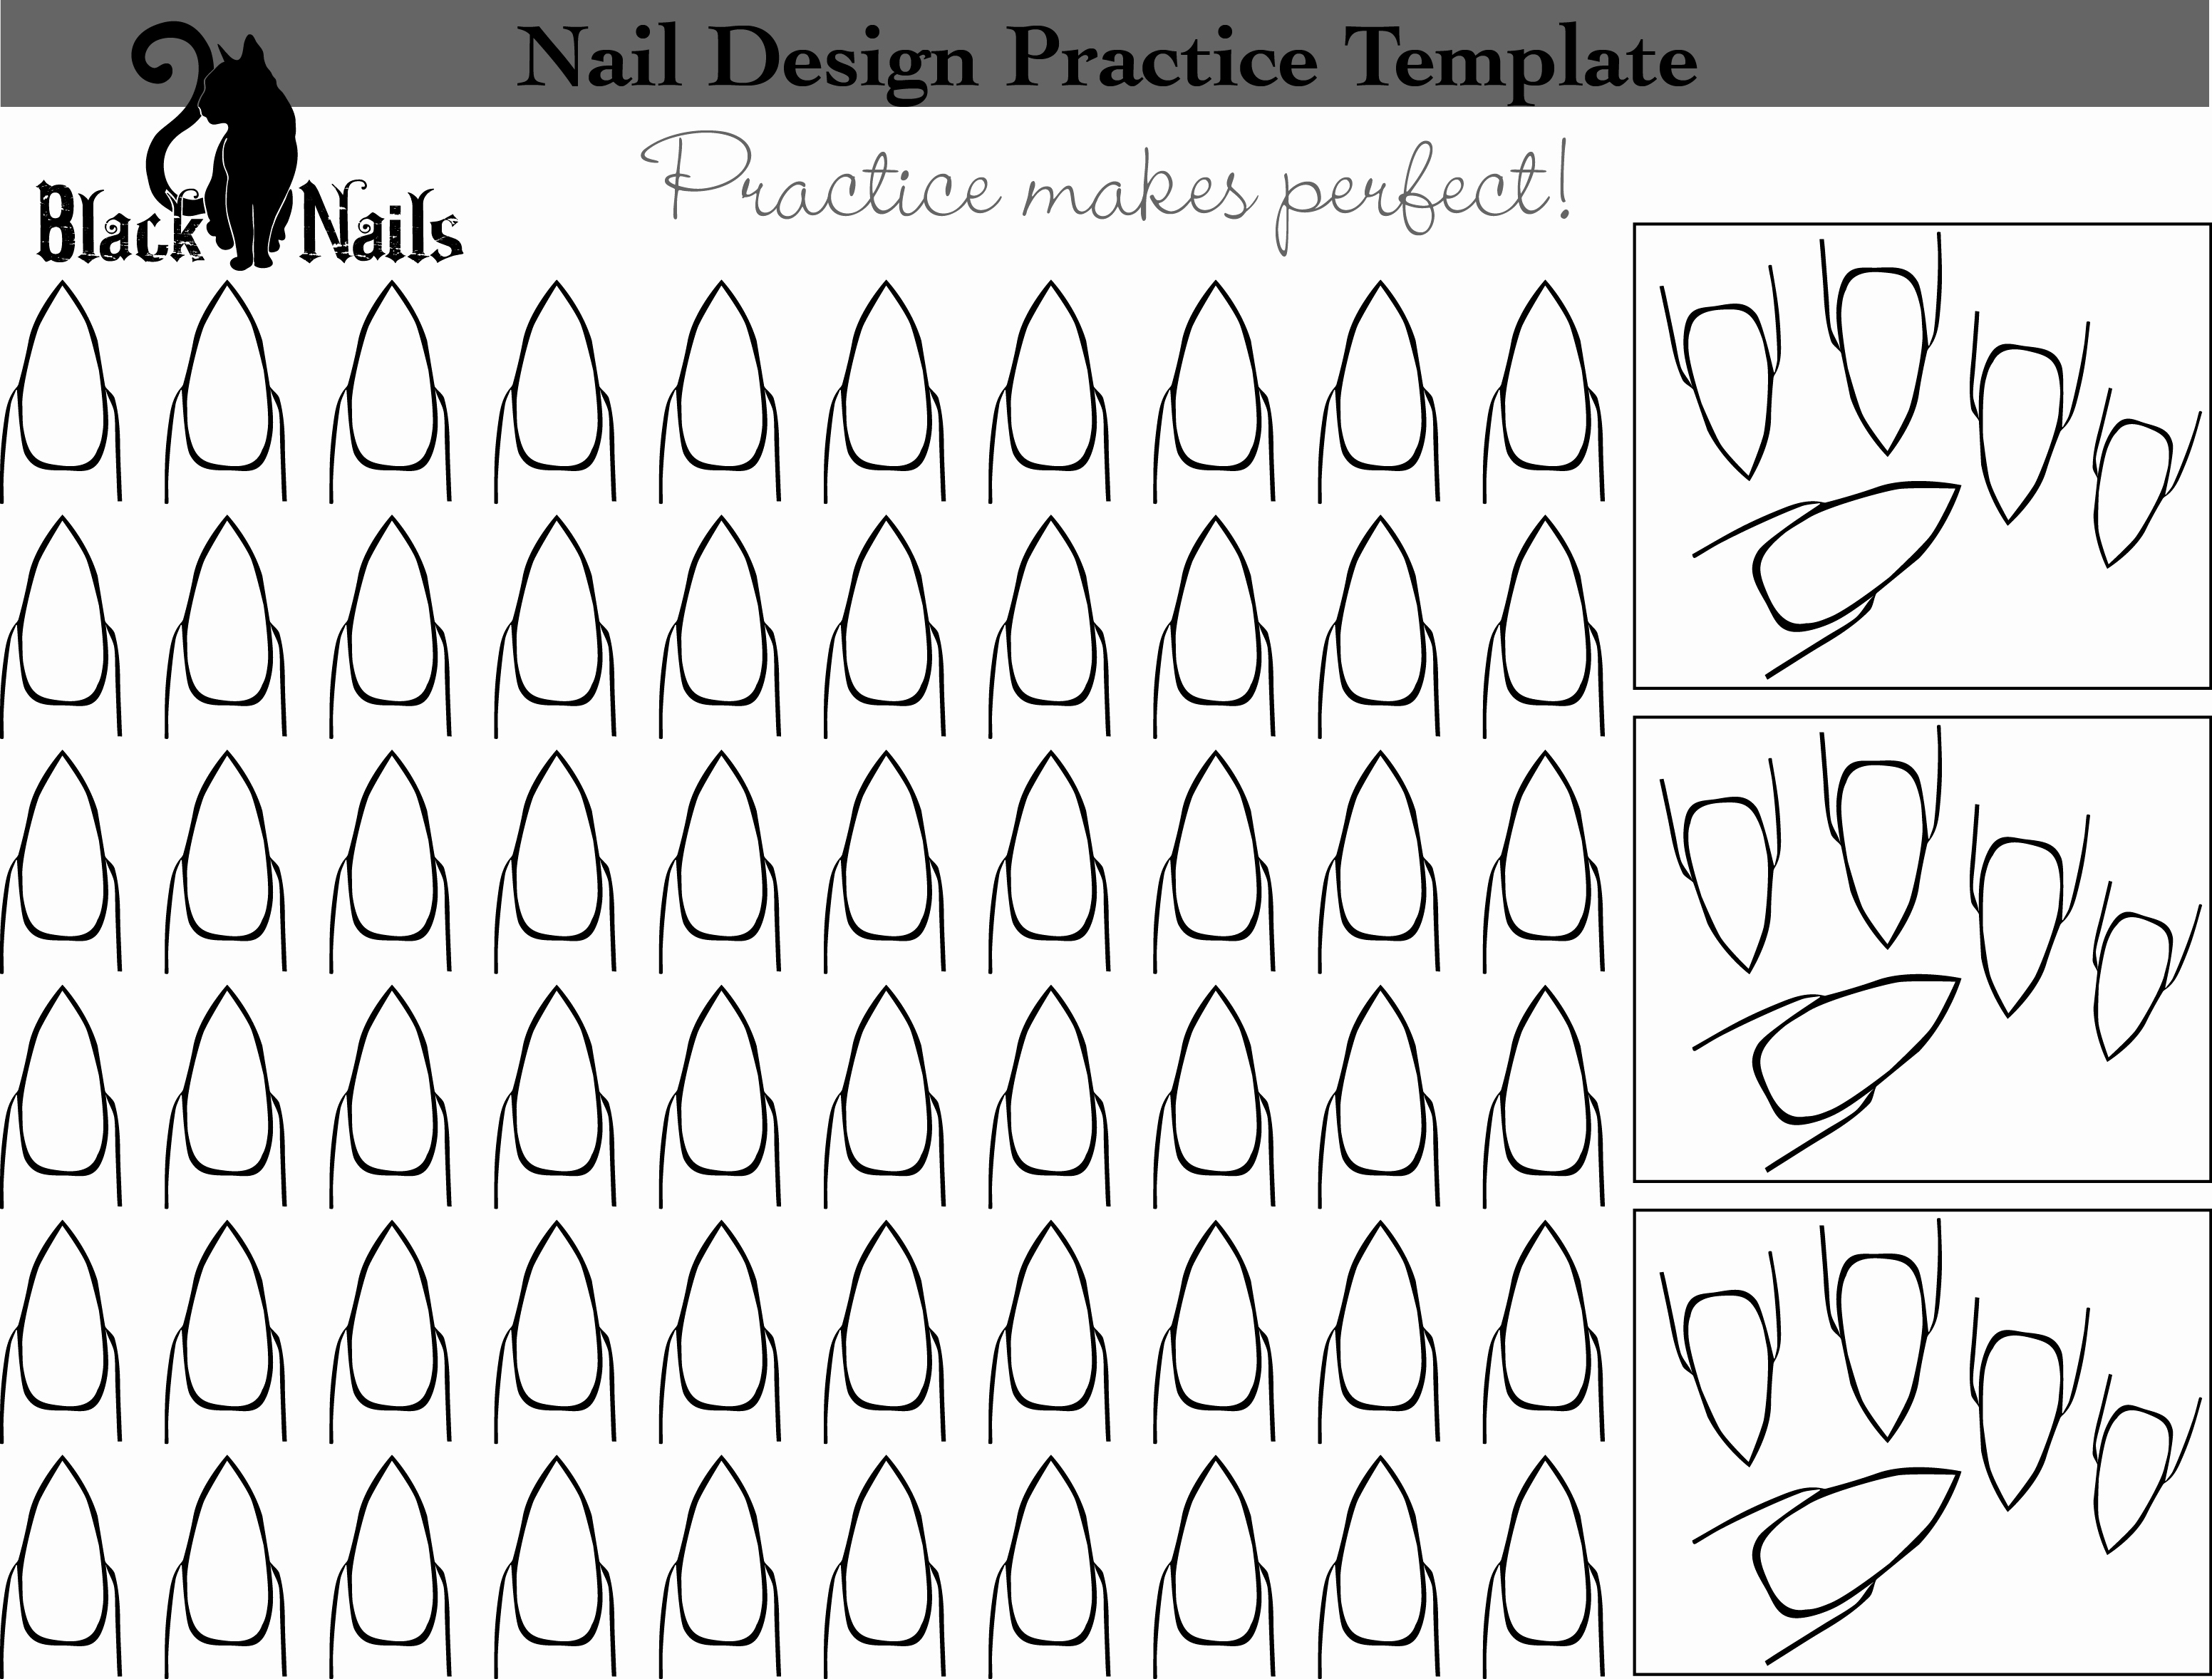 Printable Nail Art Templates New Nail Art Design Practice Templates or Sheets All